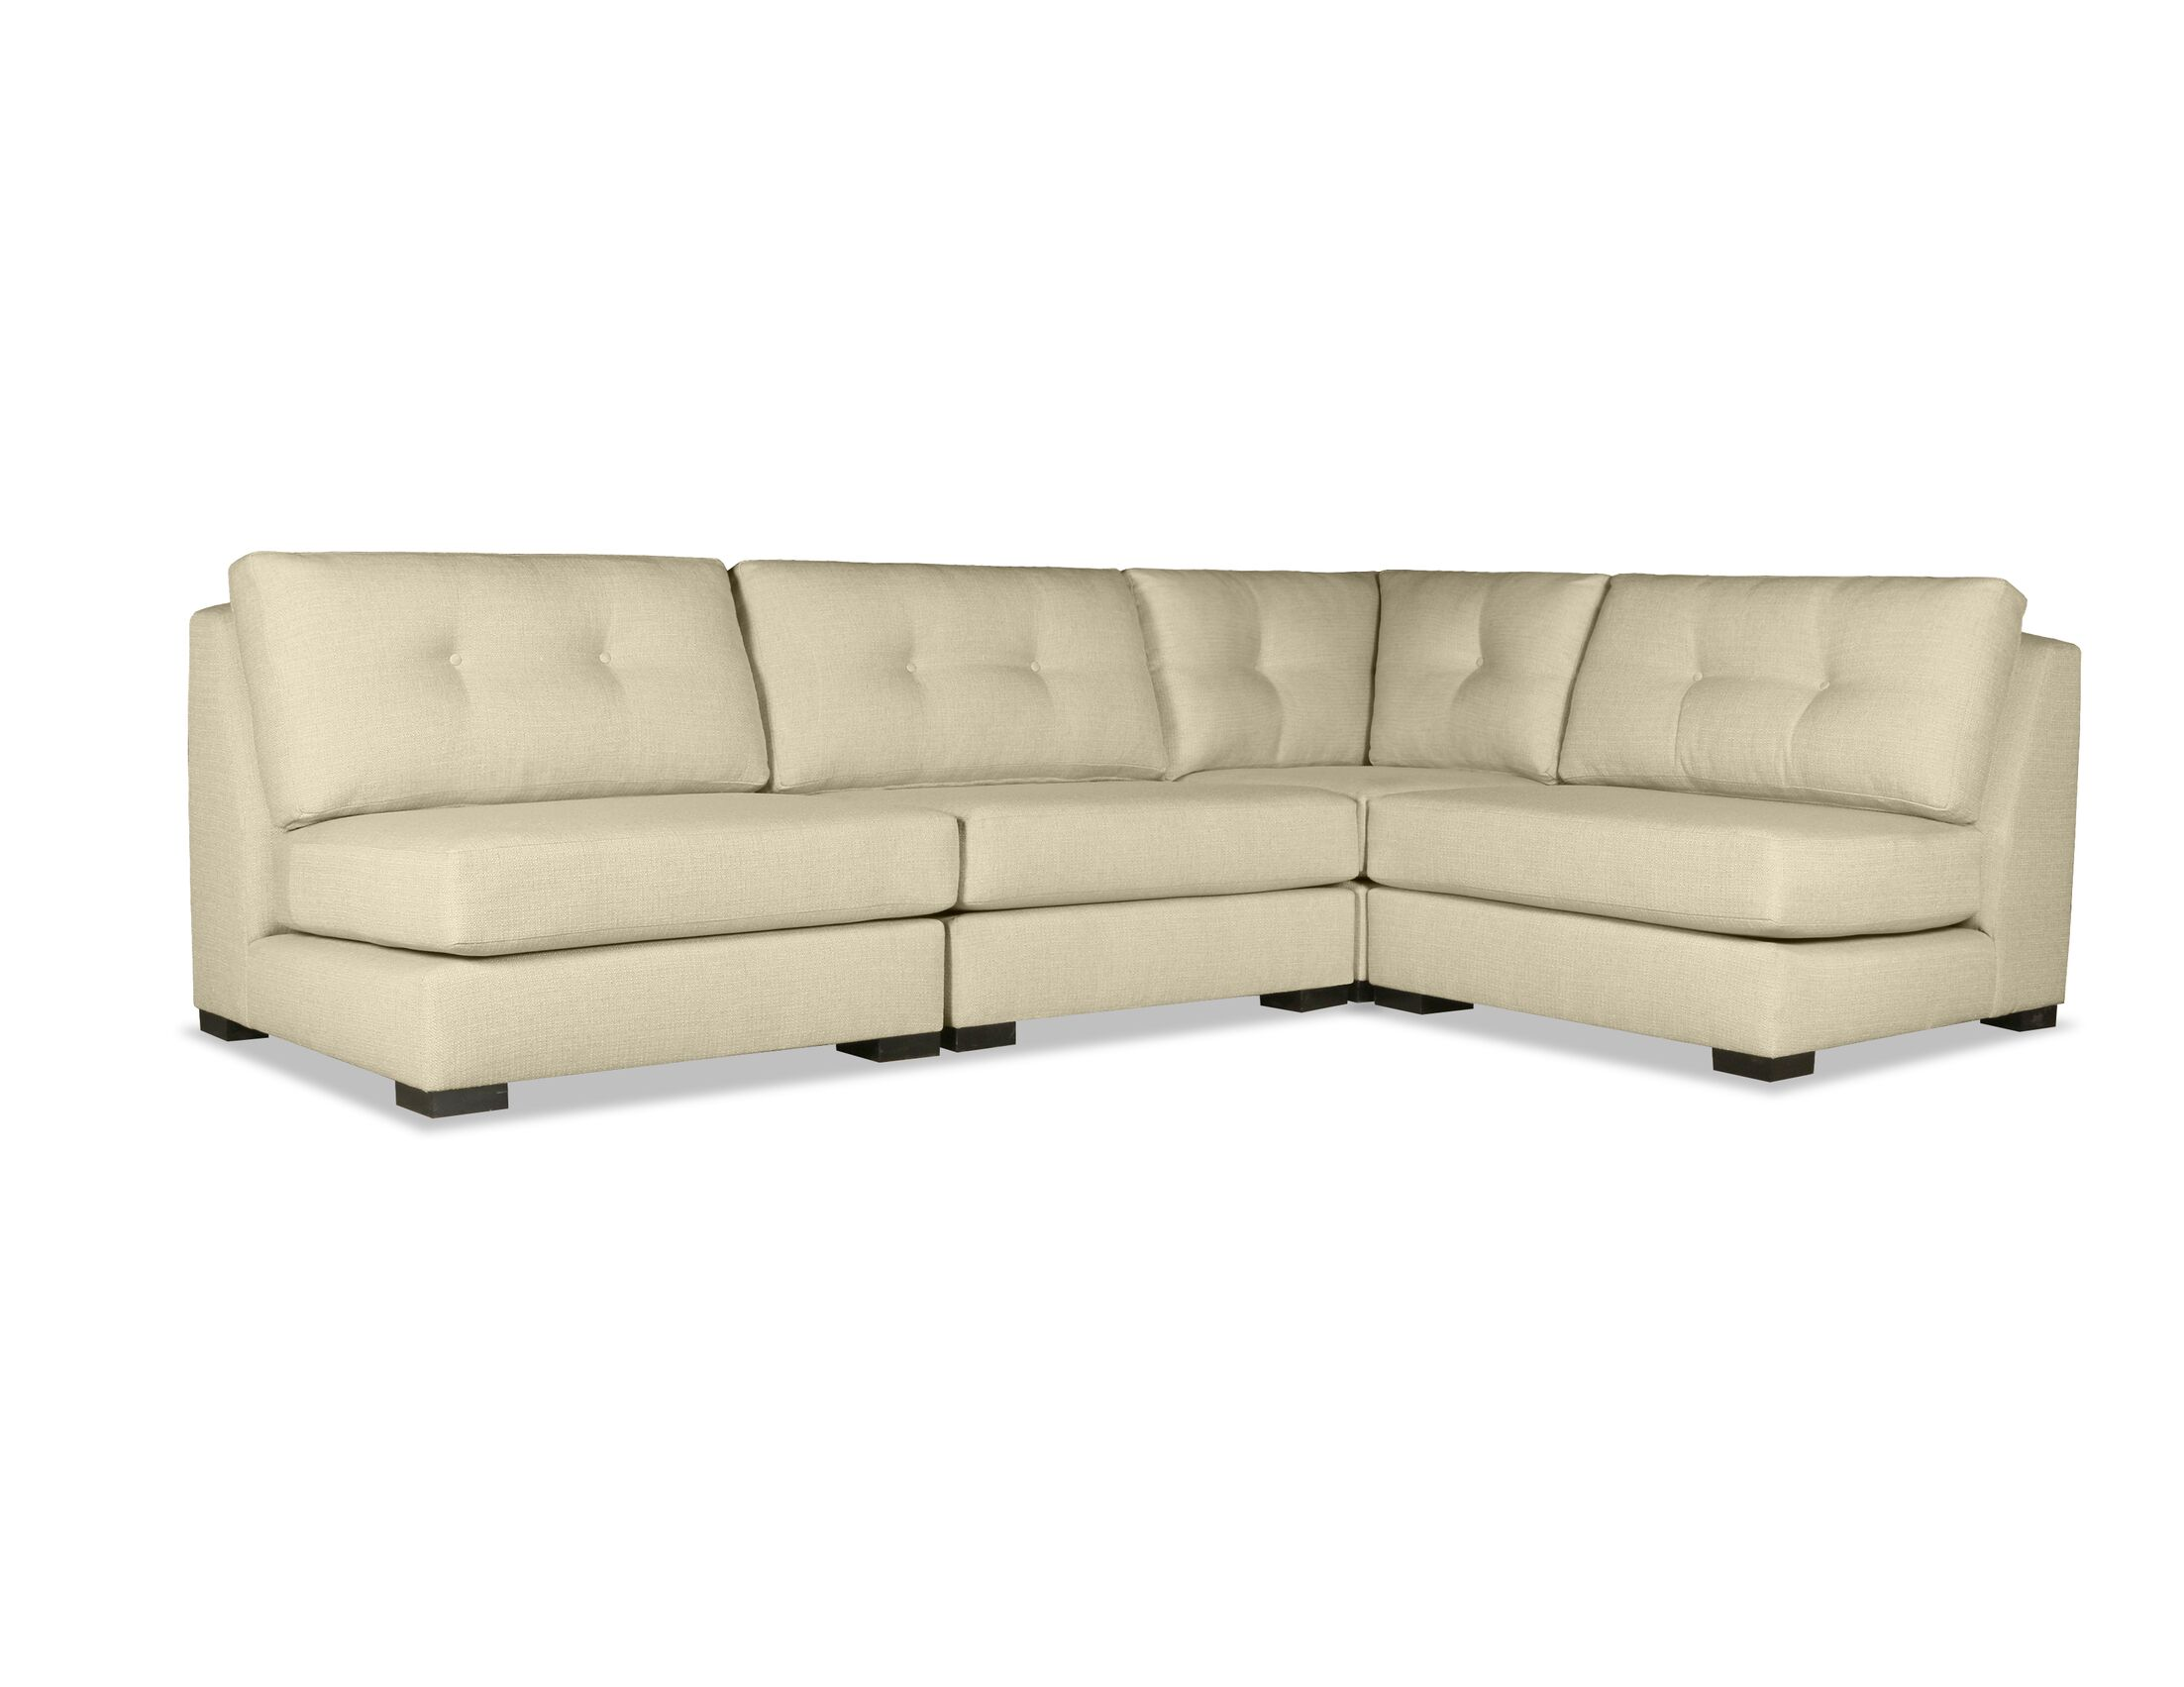 Glaude Buttoned L-Shape Short Modular Sectional Upholstery: Sand